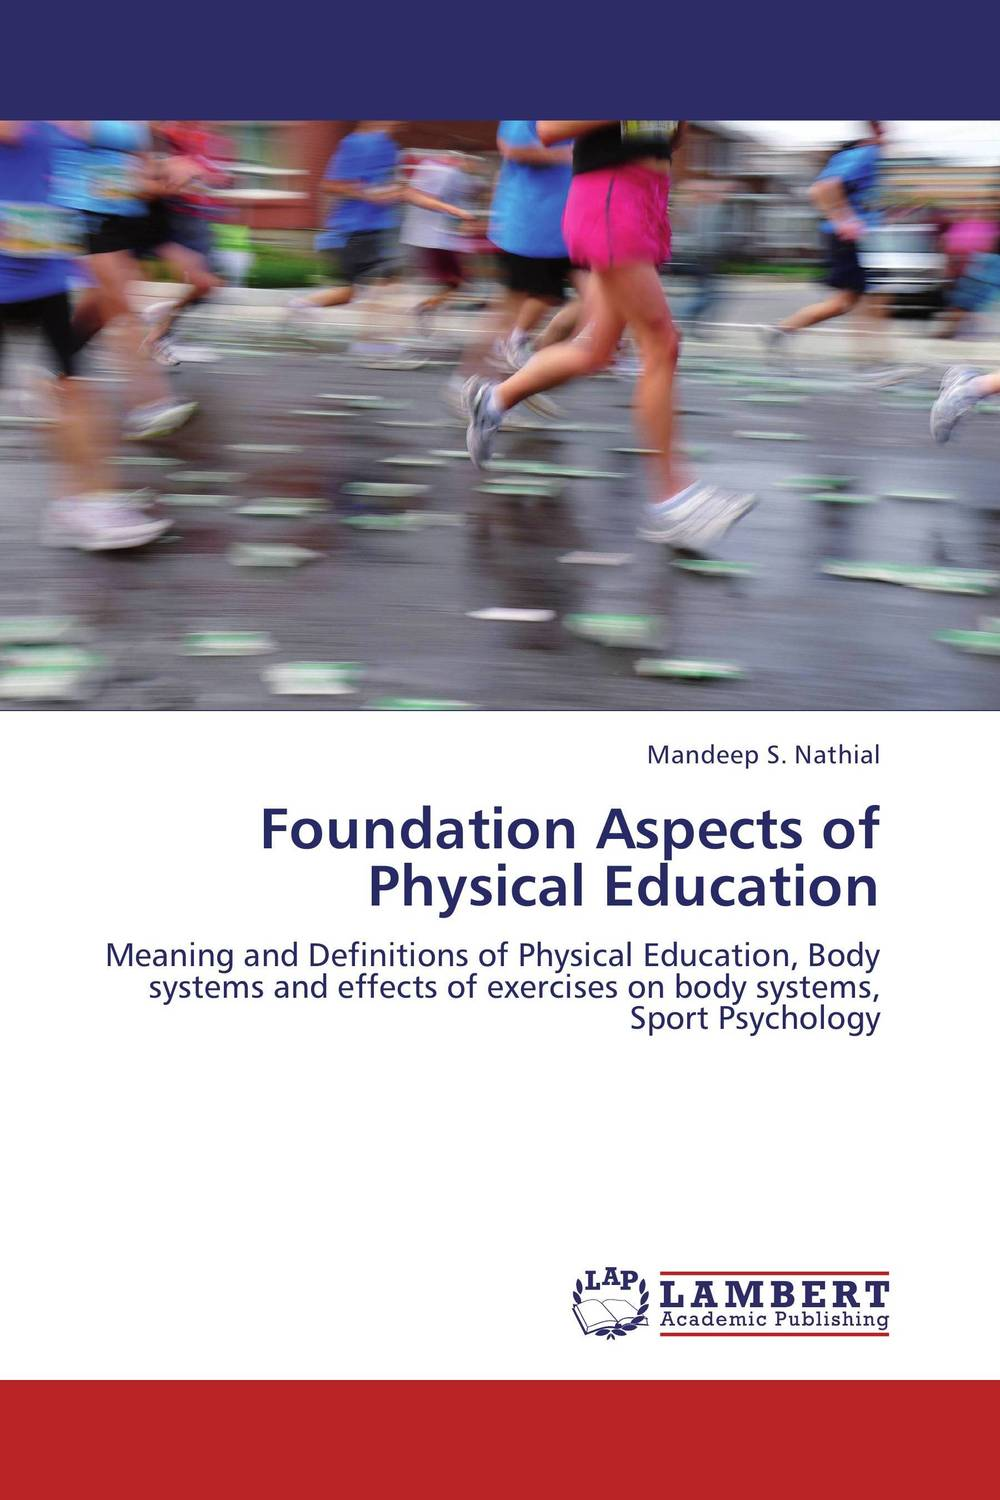 Foundation Aspects of Physical Education  demdeo durge physical fitness and physiological parameters of sport persons